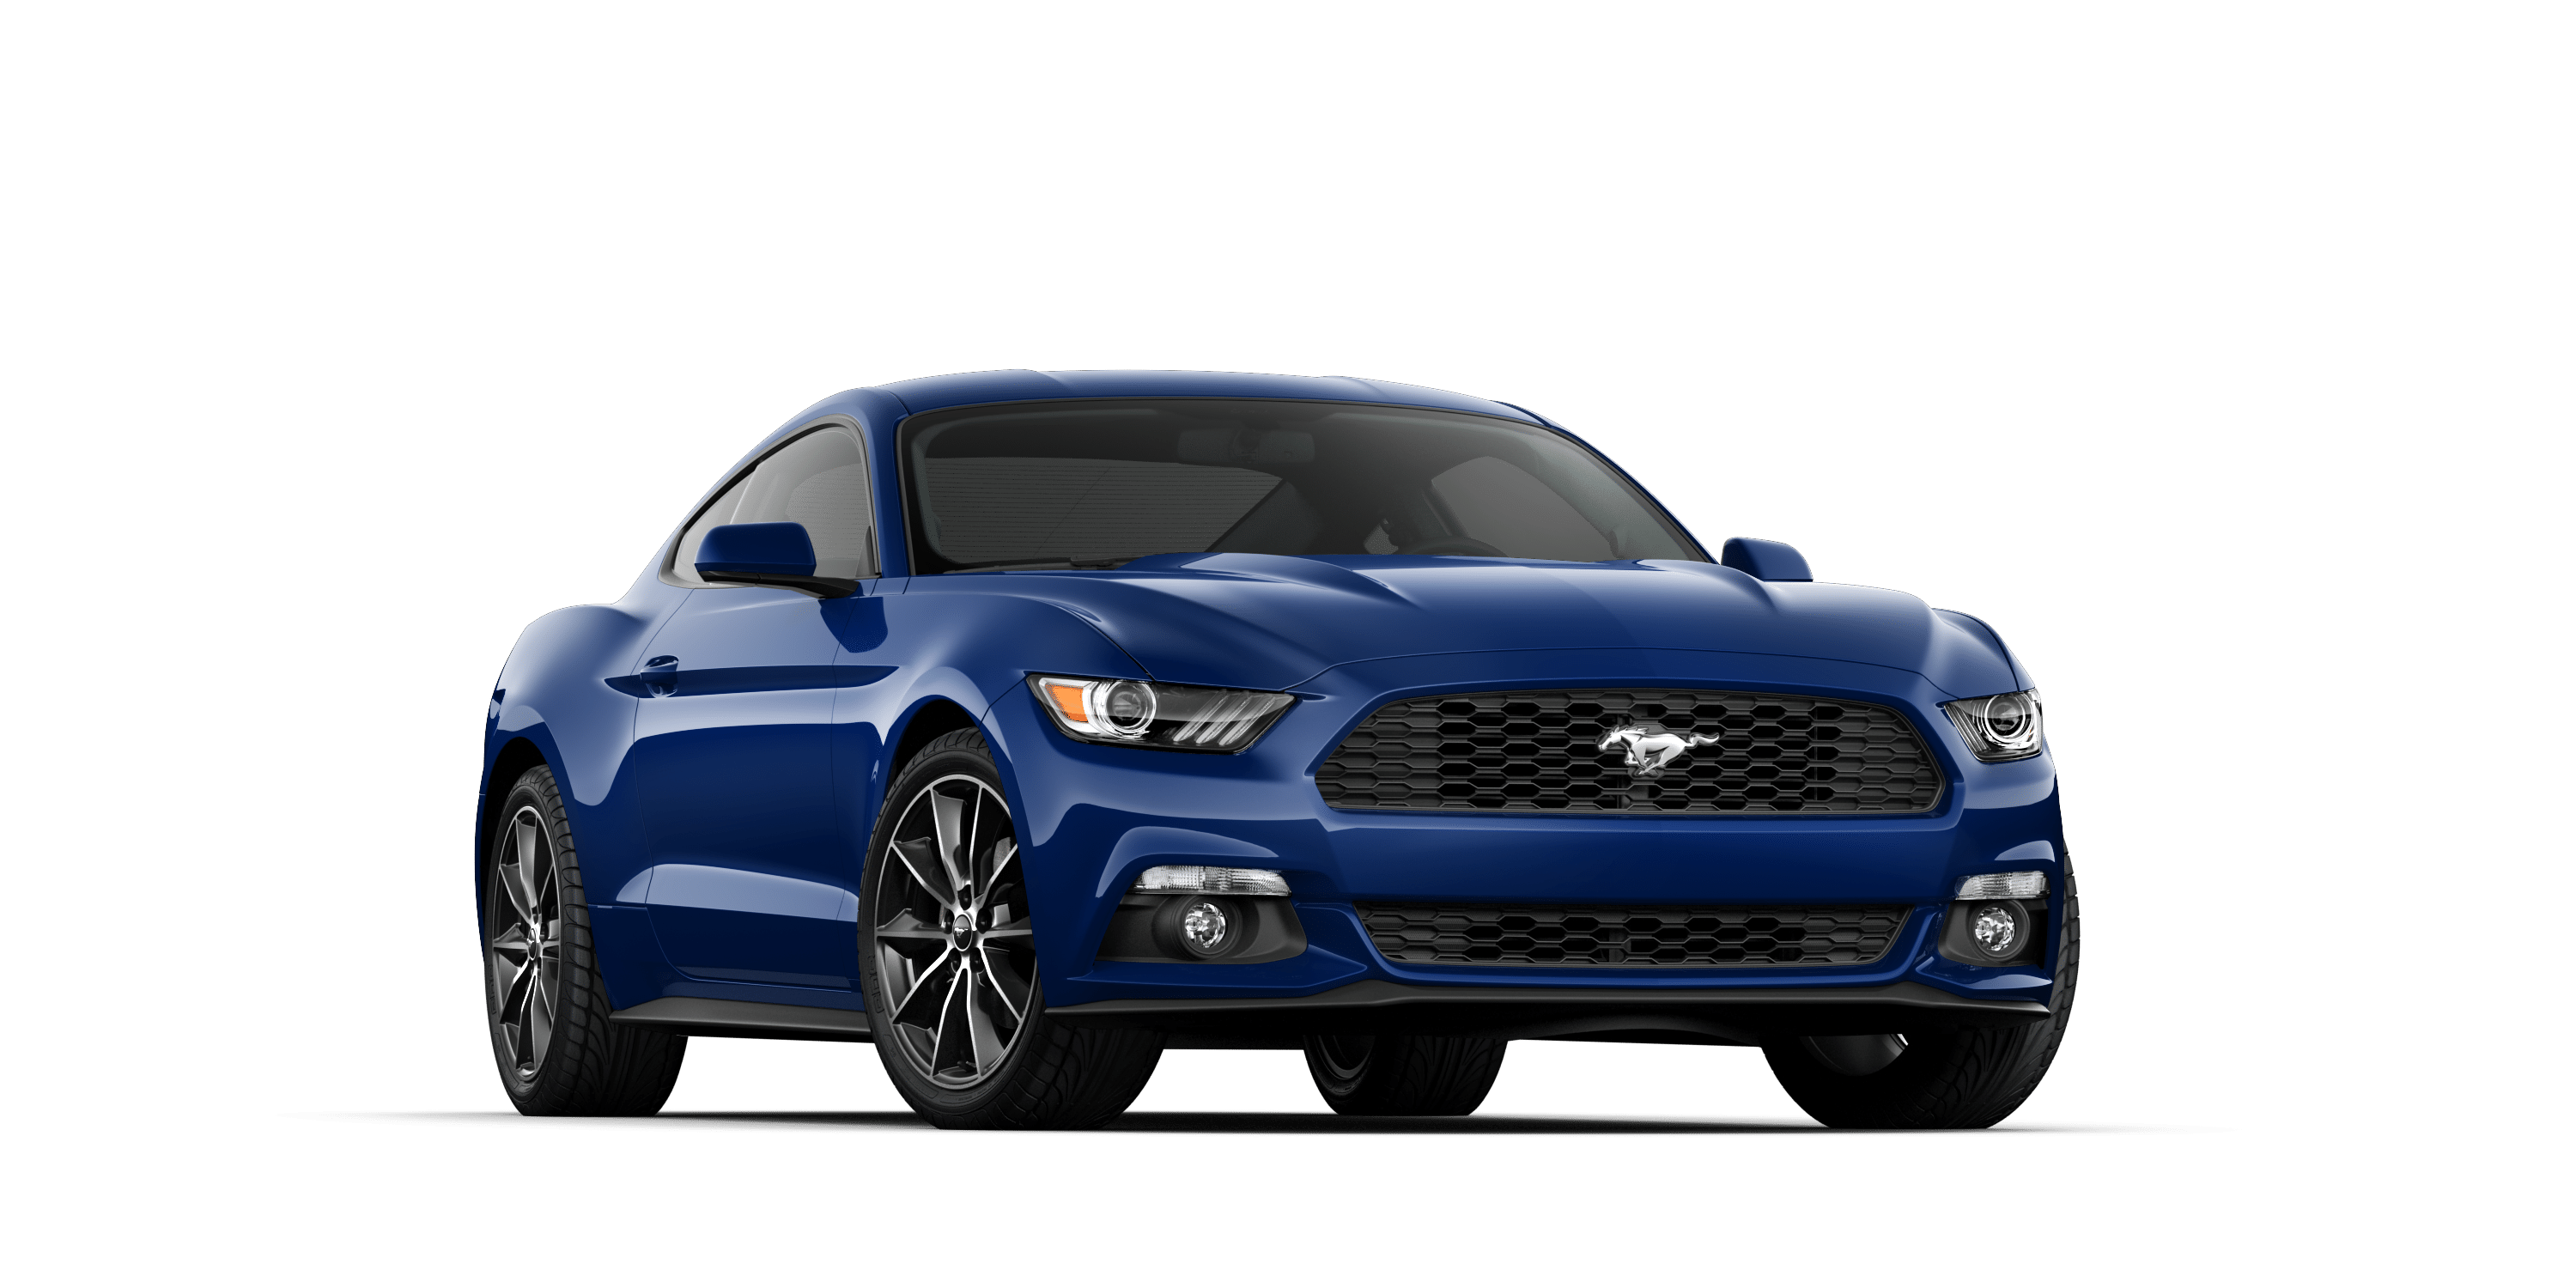 Kieffe And Sons Ford >> 2017 Ford Mustang for sale in Mojave - 1FA6P8TH9H5357235 - Kieffe & Sons Ford